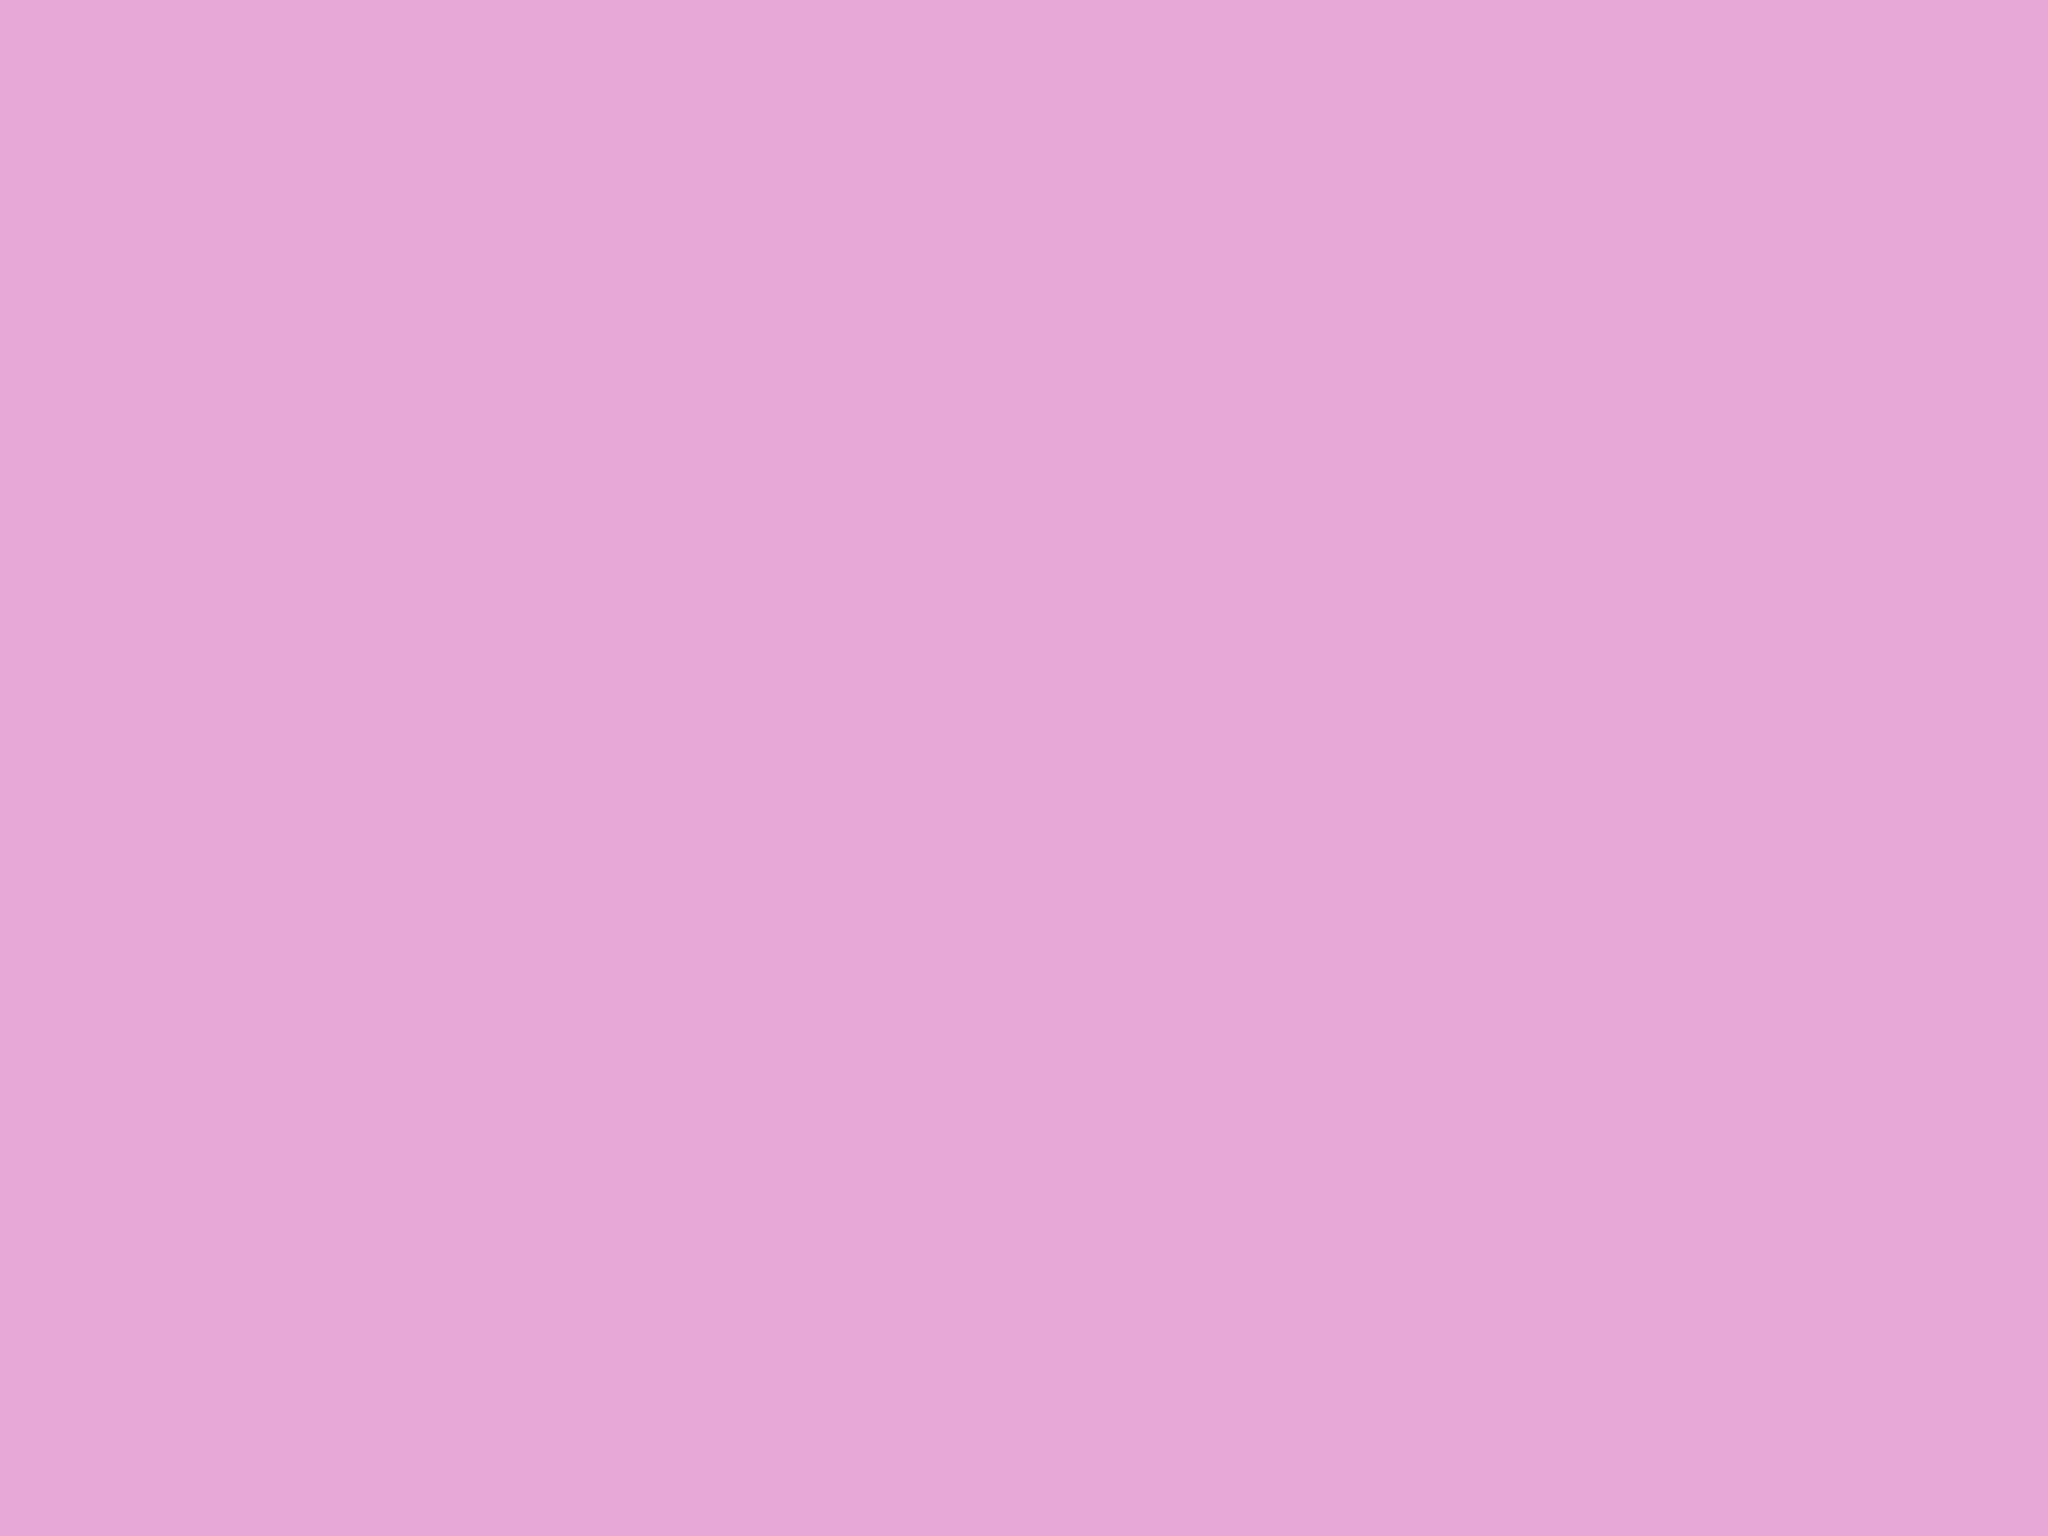 2048x1536 Light Orchid Solid Color Background